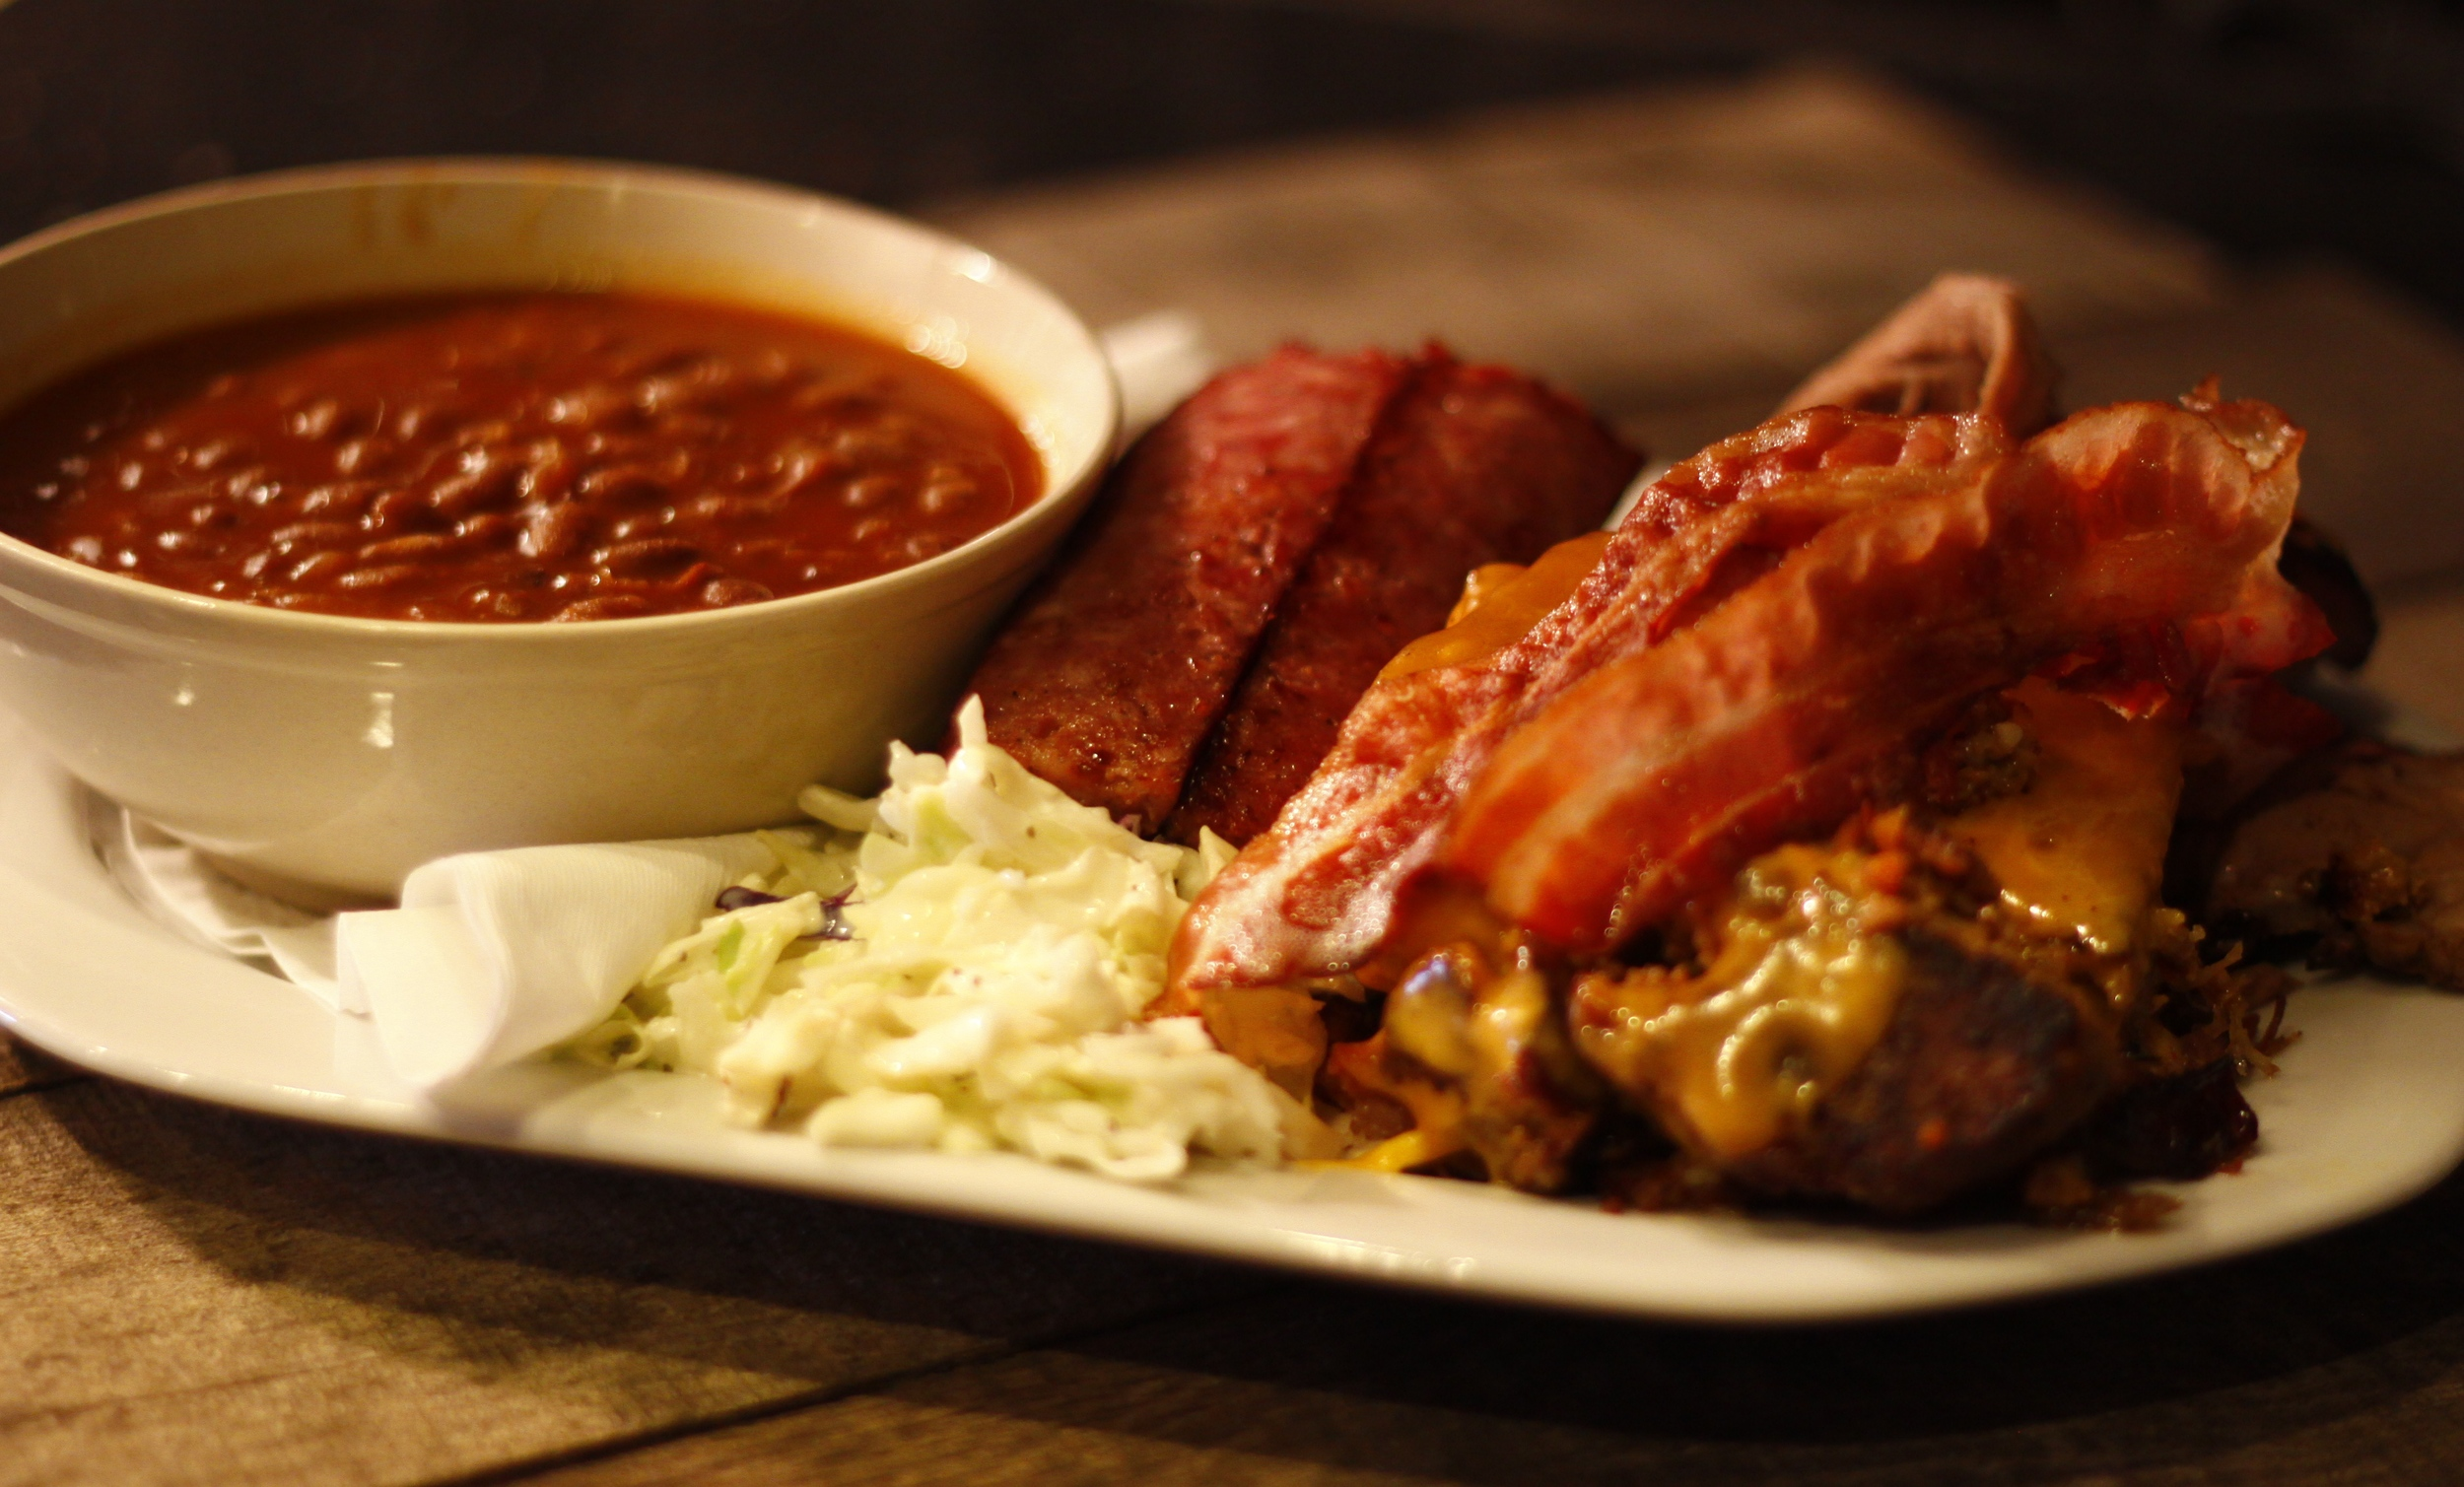 Gluten free? No problem, All of our meat is gluten free as well as our signature sauce.